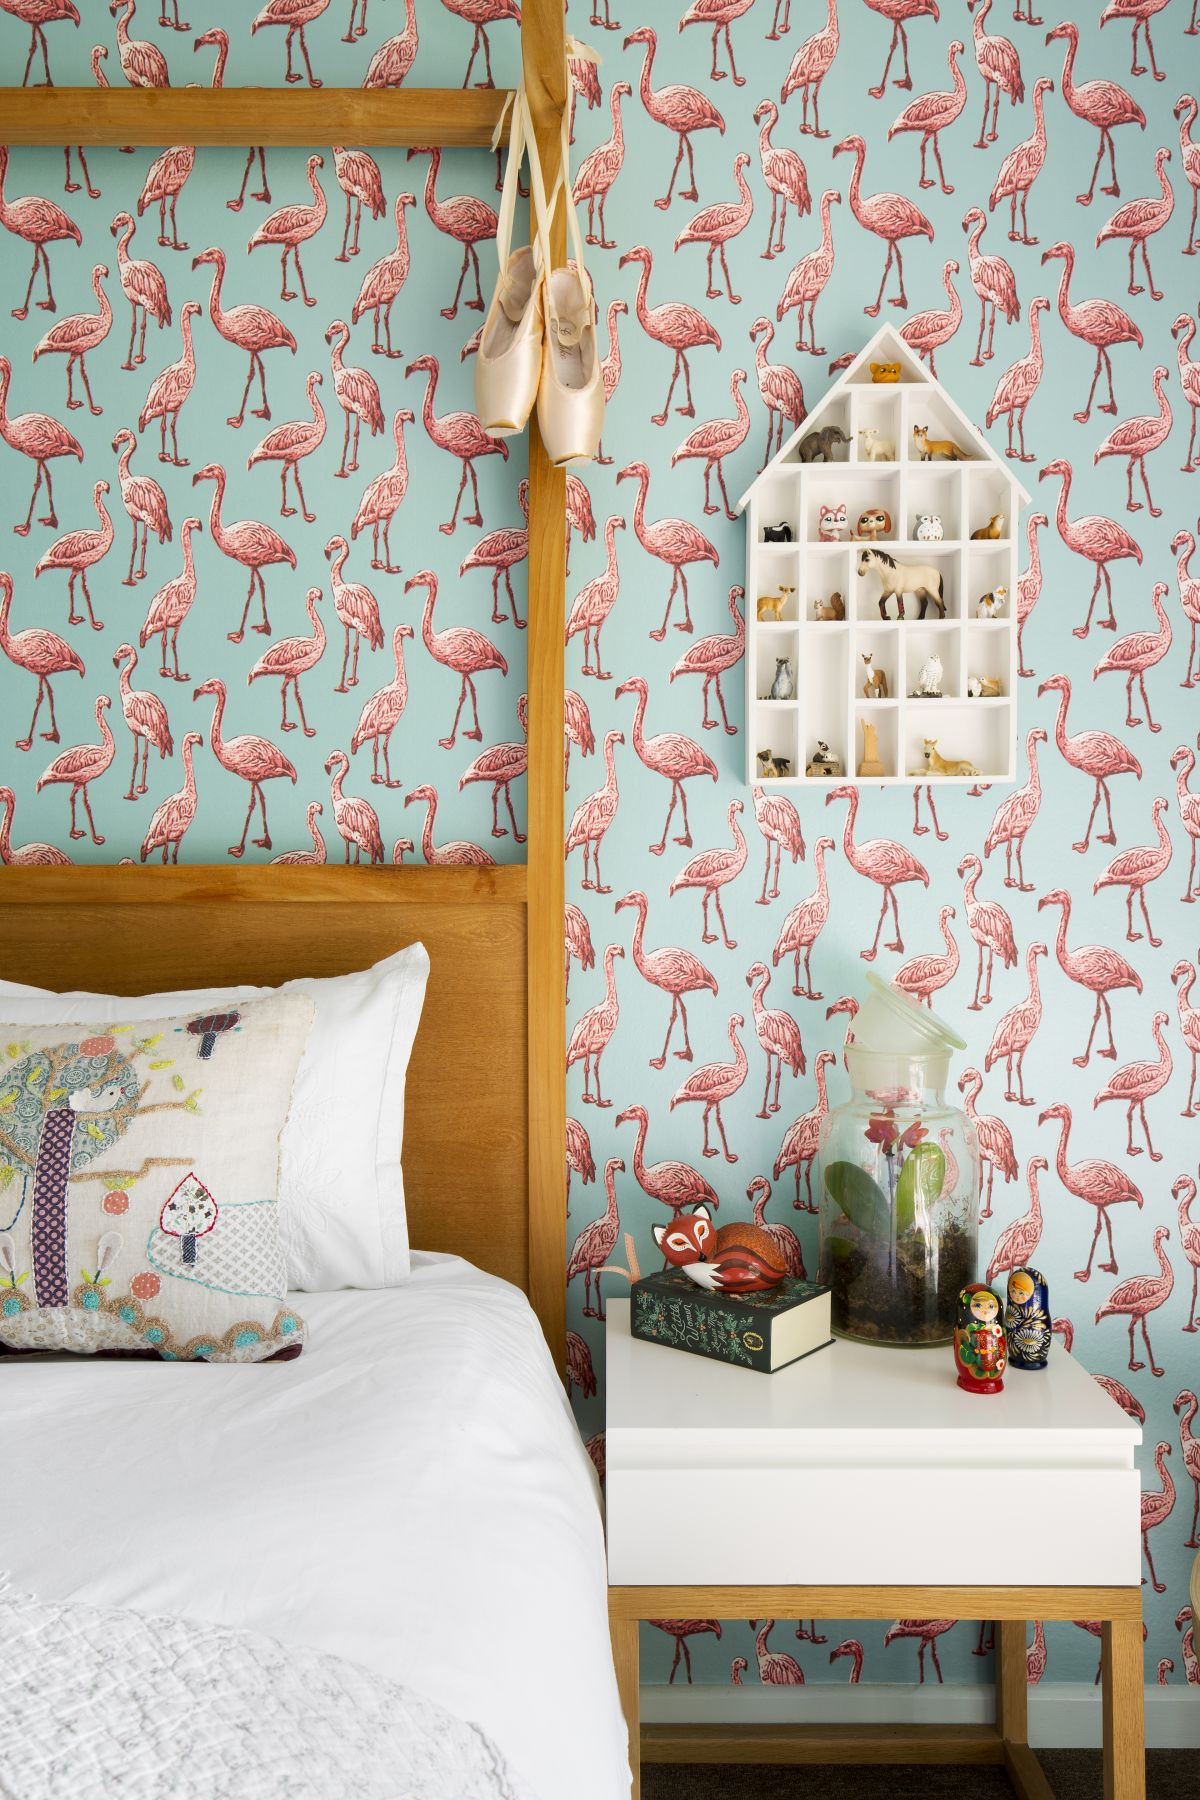 In the children's bedrooms the decor is more colorful and full of playful decor elements